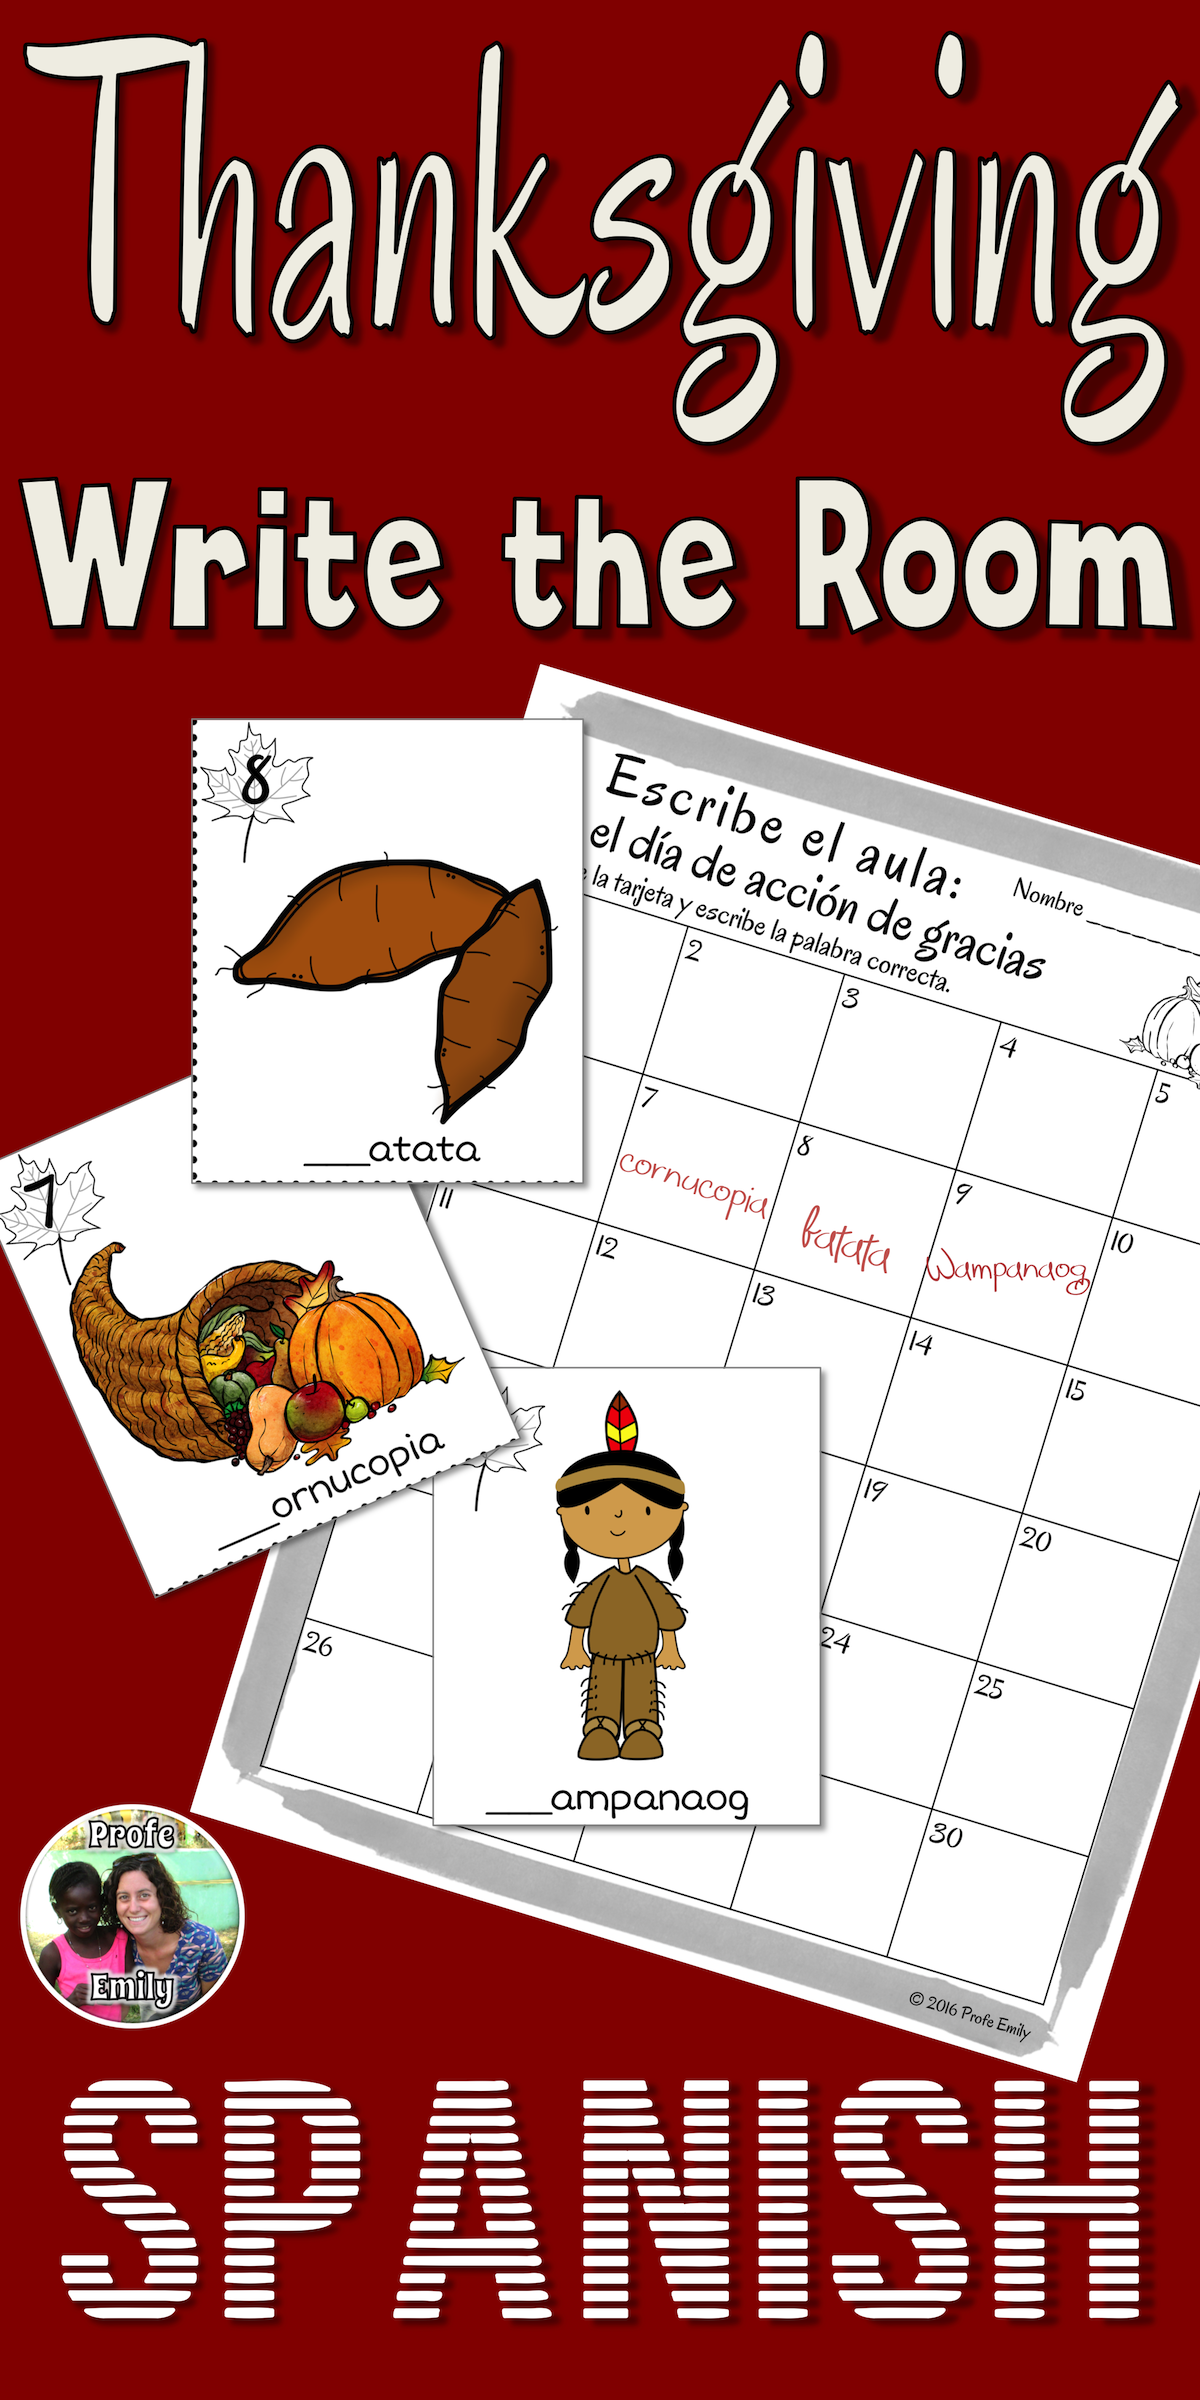 Thanksgiving Spanish Read Write The Room